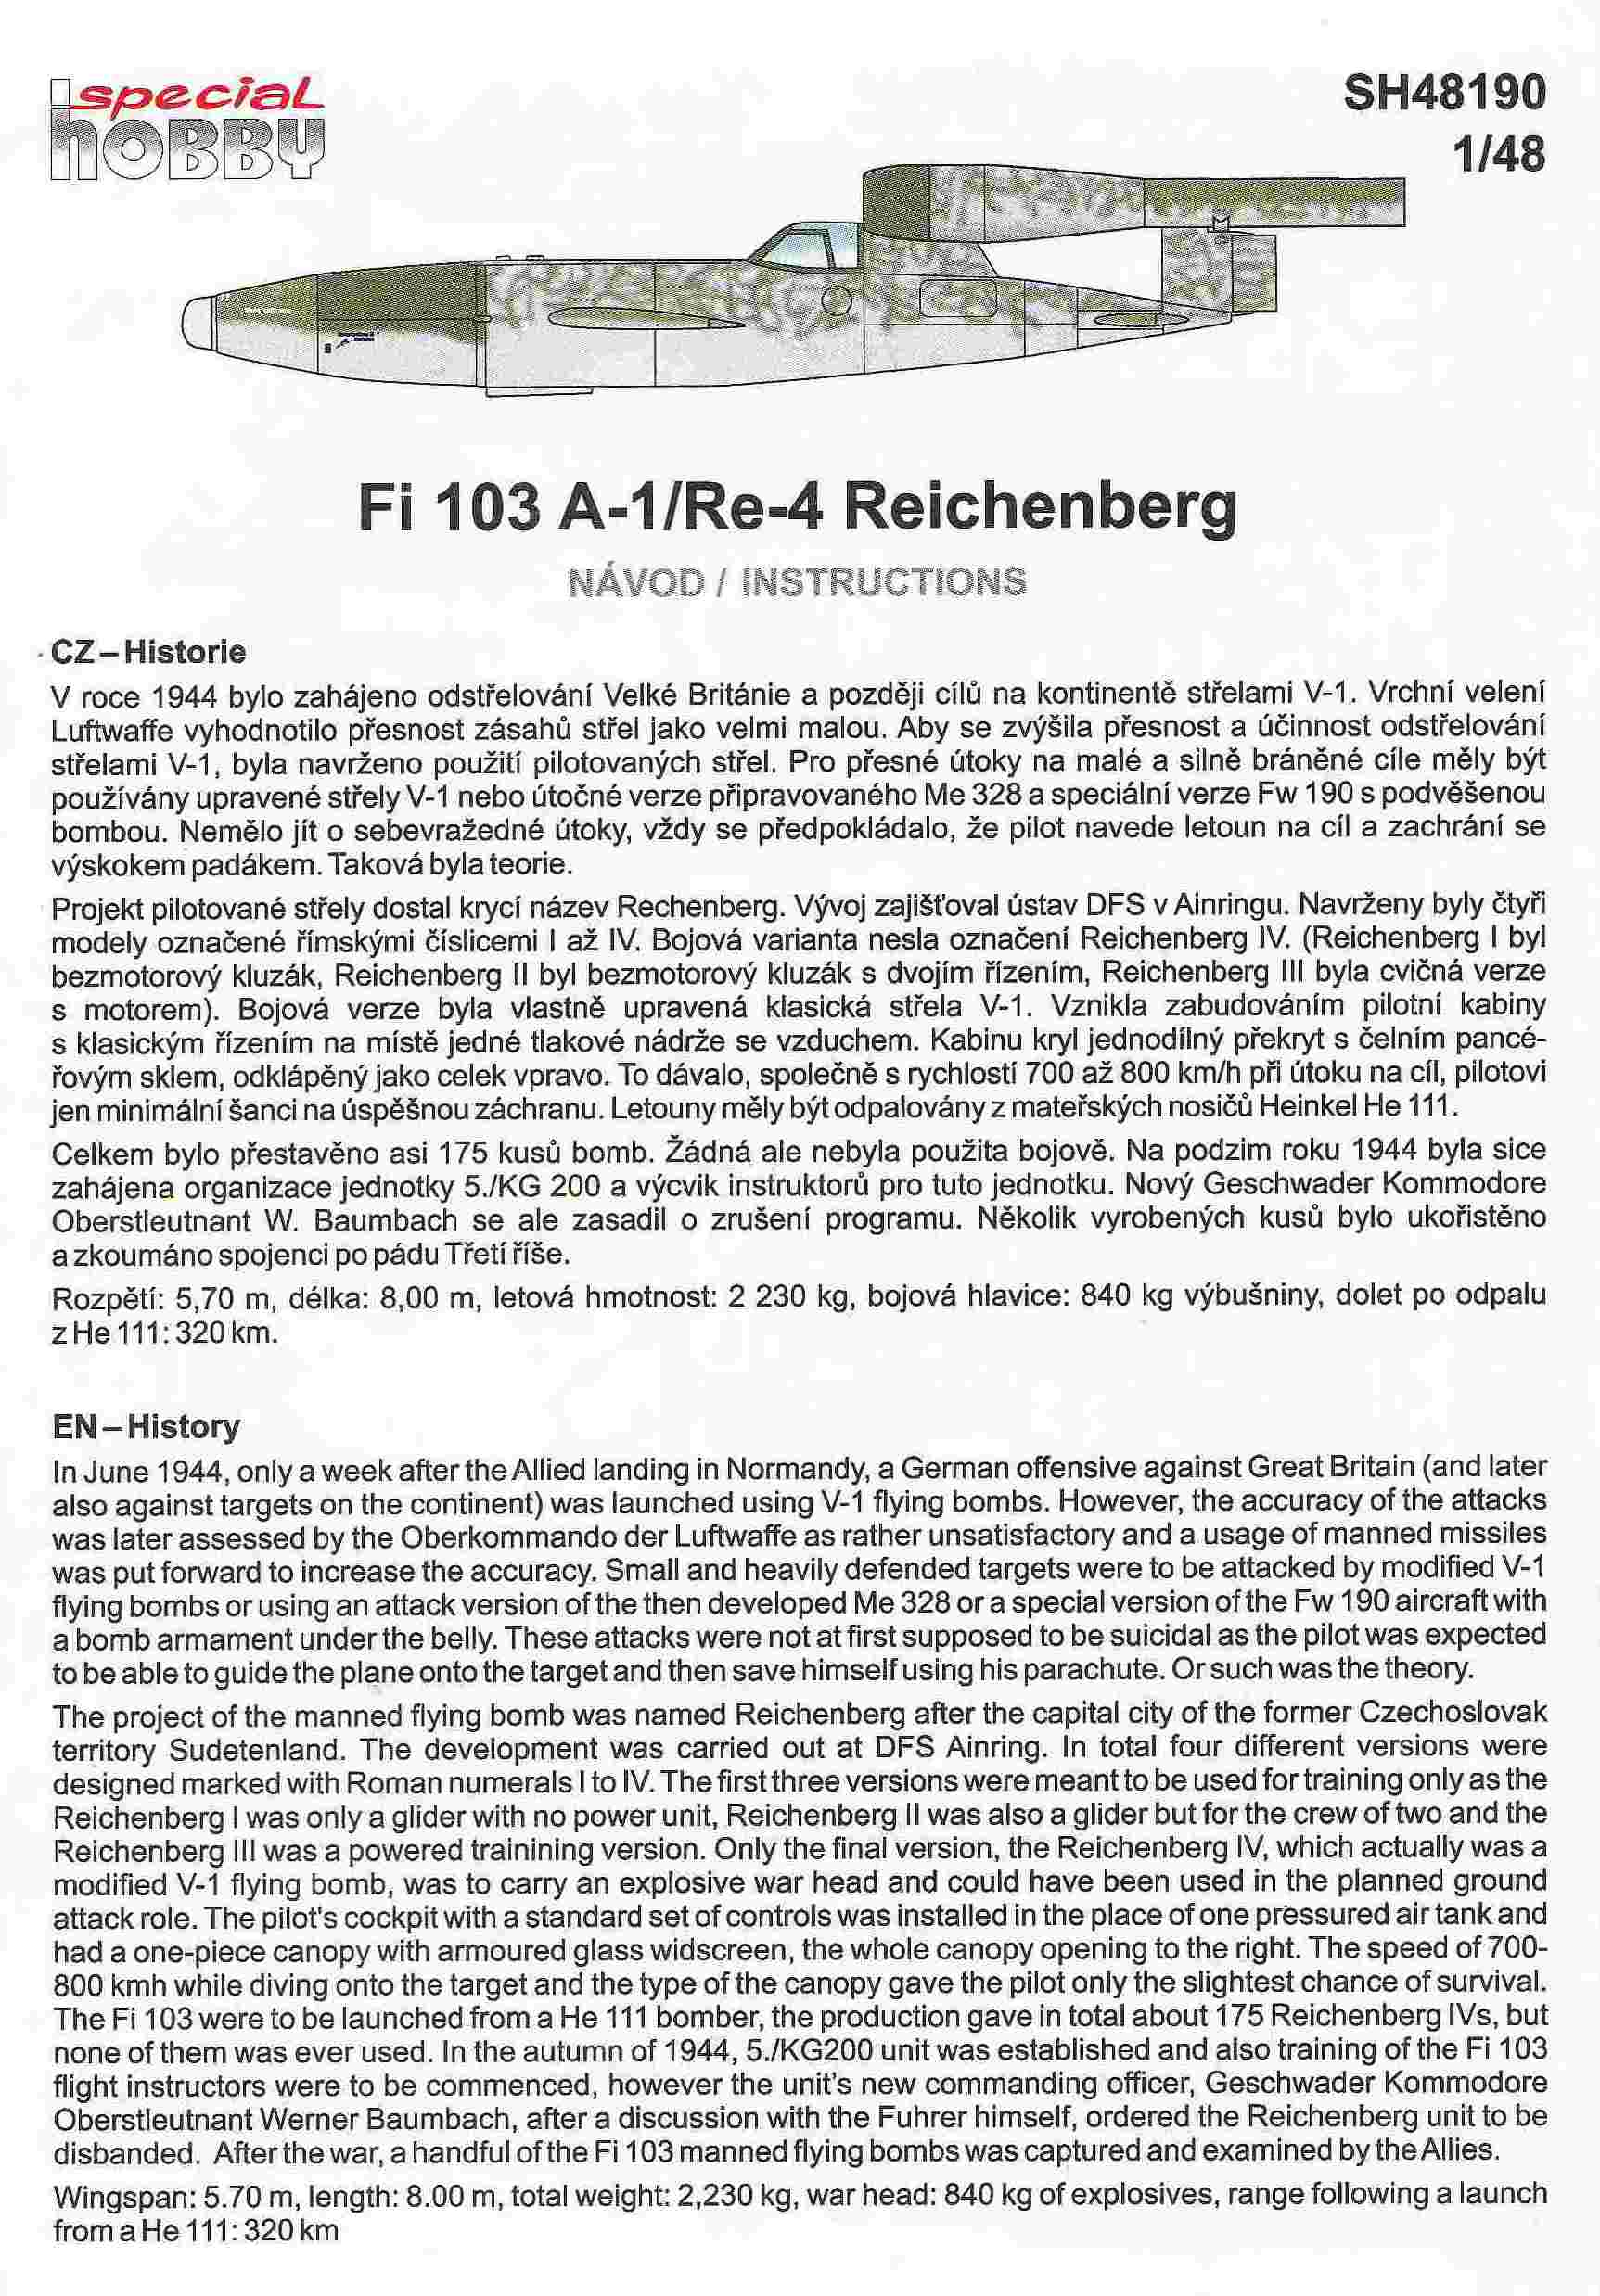 Special-Hobby-SH-48190-Fi-103A-1-Re-4-Reichenberg-2 Fiseler Fi 103A-1 / Re-4 Reichenberg (bemannte V1) von Special Hobby SH 48190